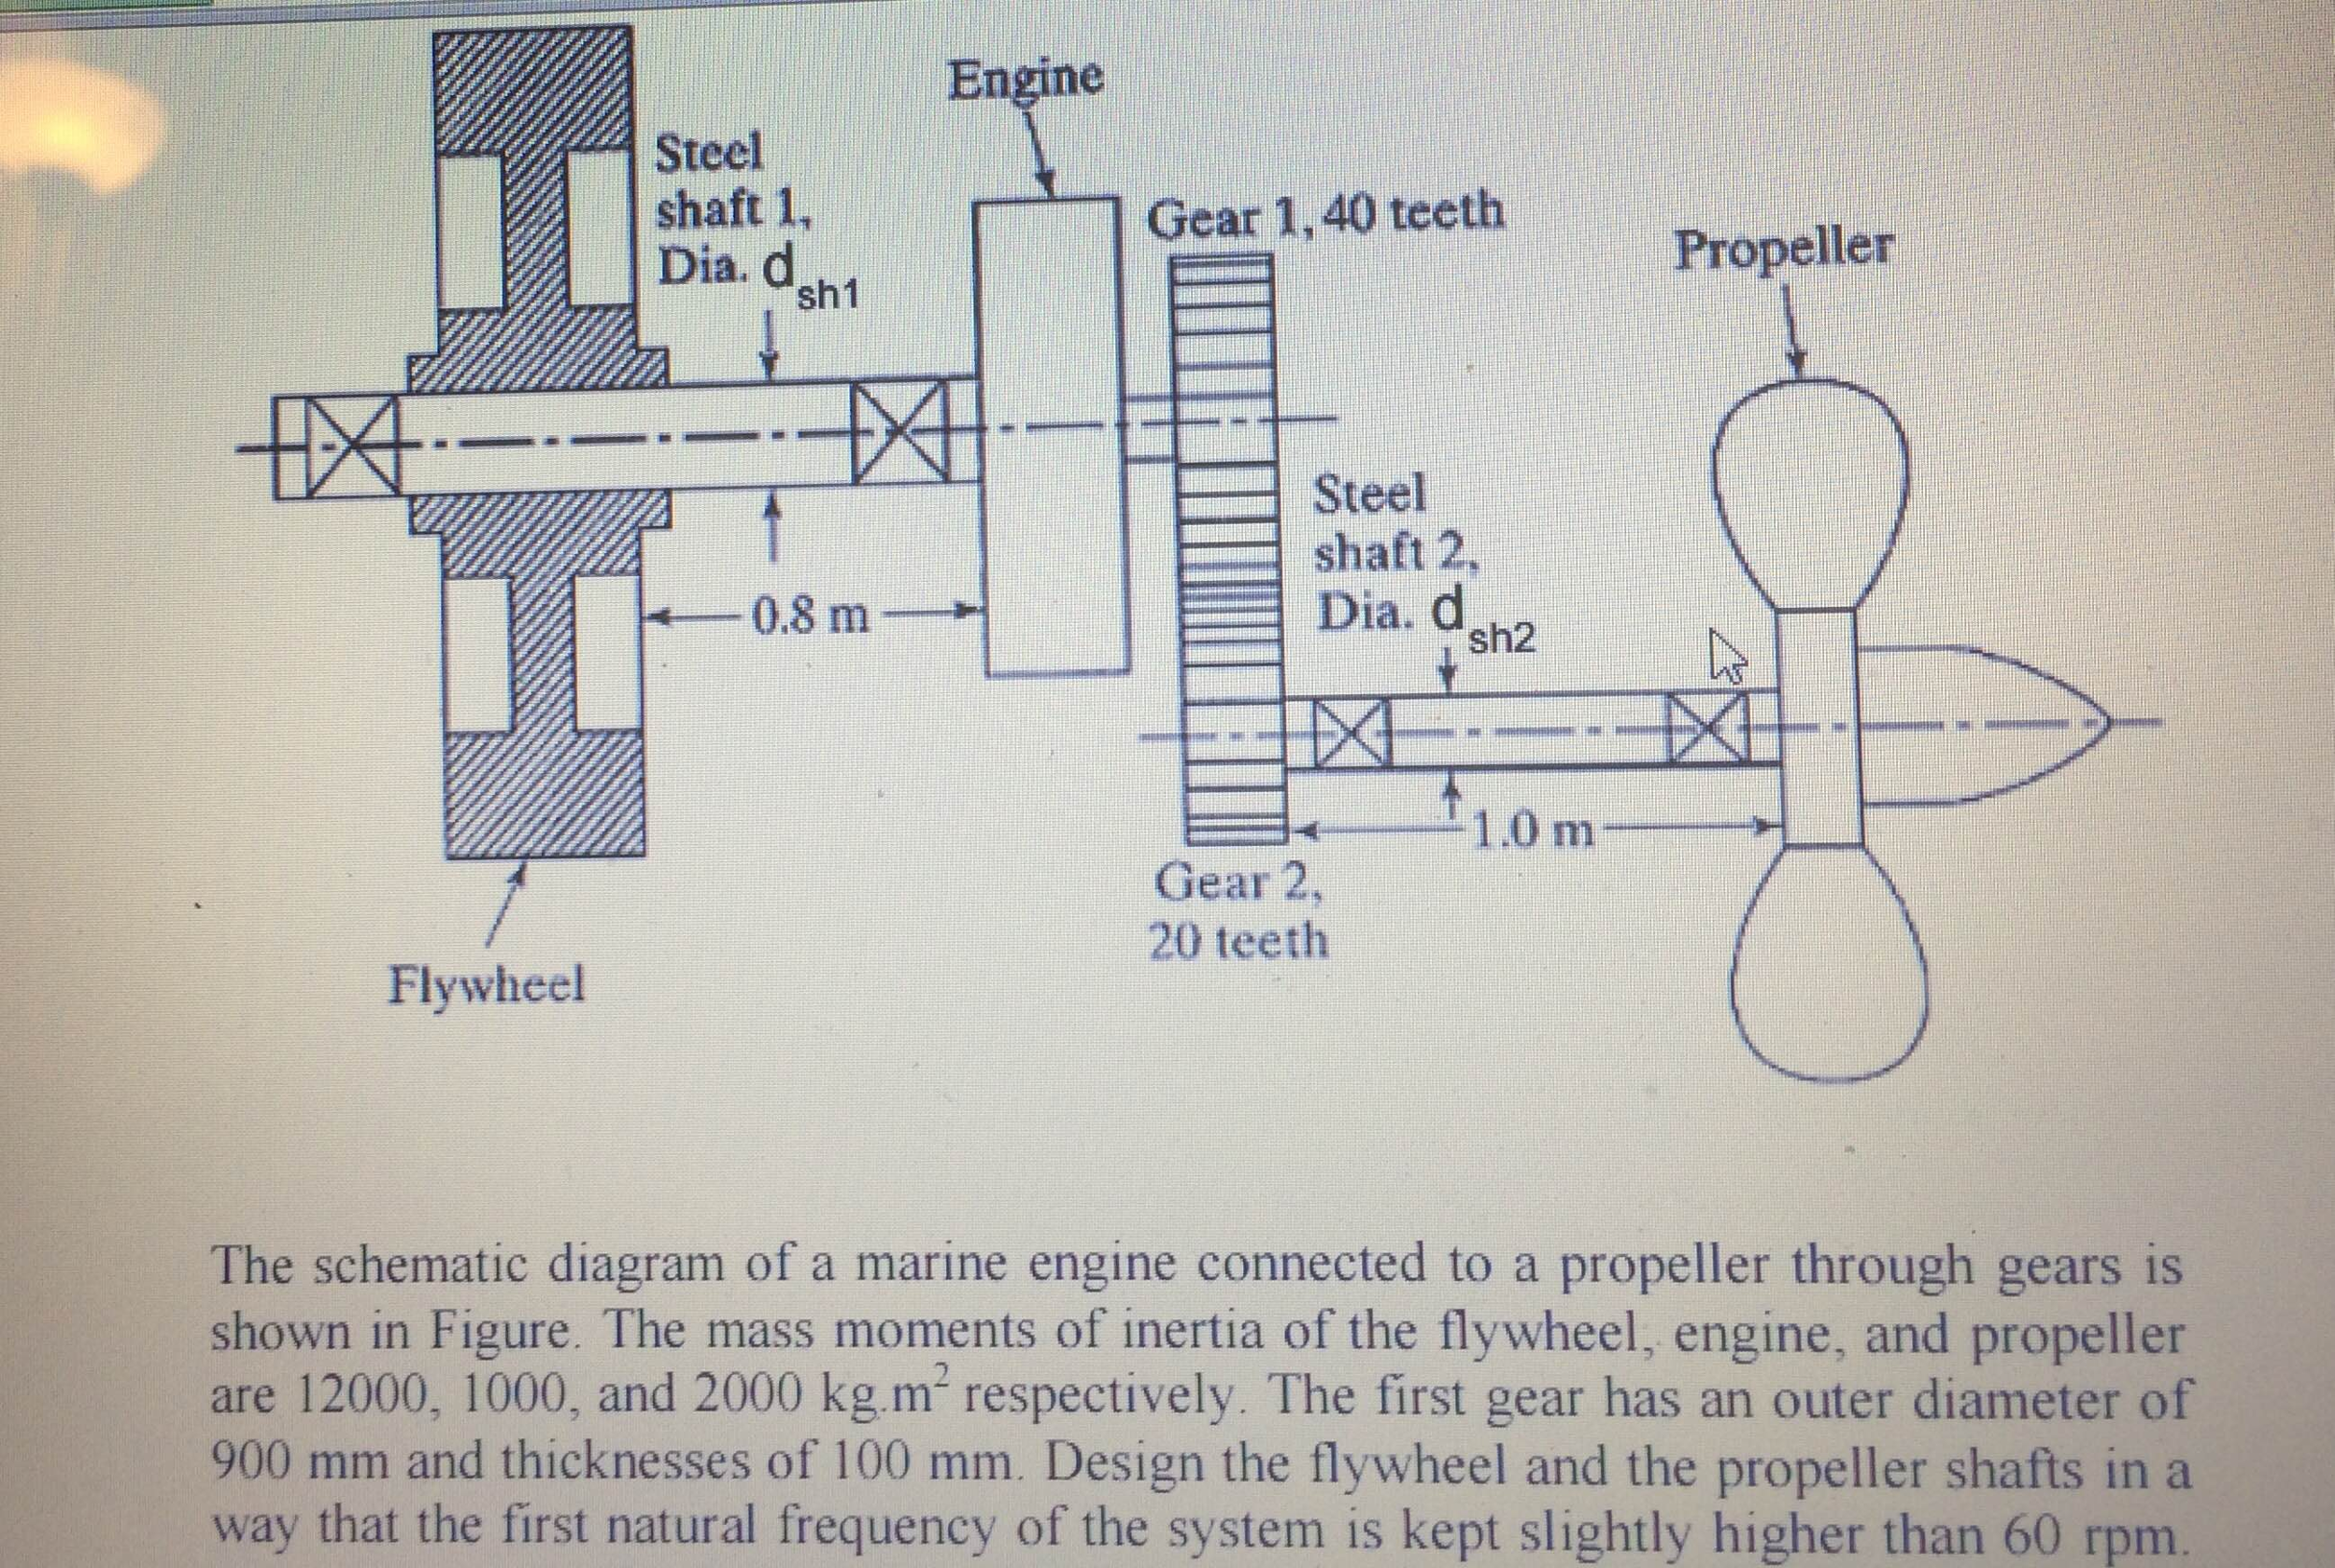 Question: The schematic diagram of a marine engine connected to a propeller  through gears is shown in Figur.